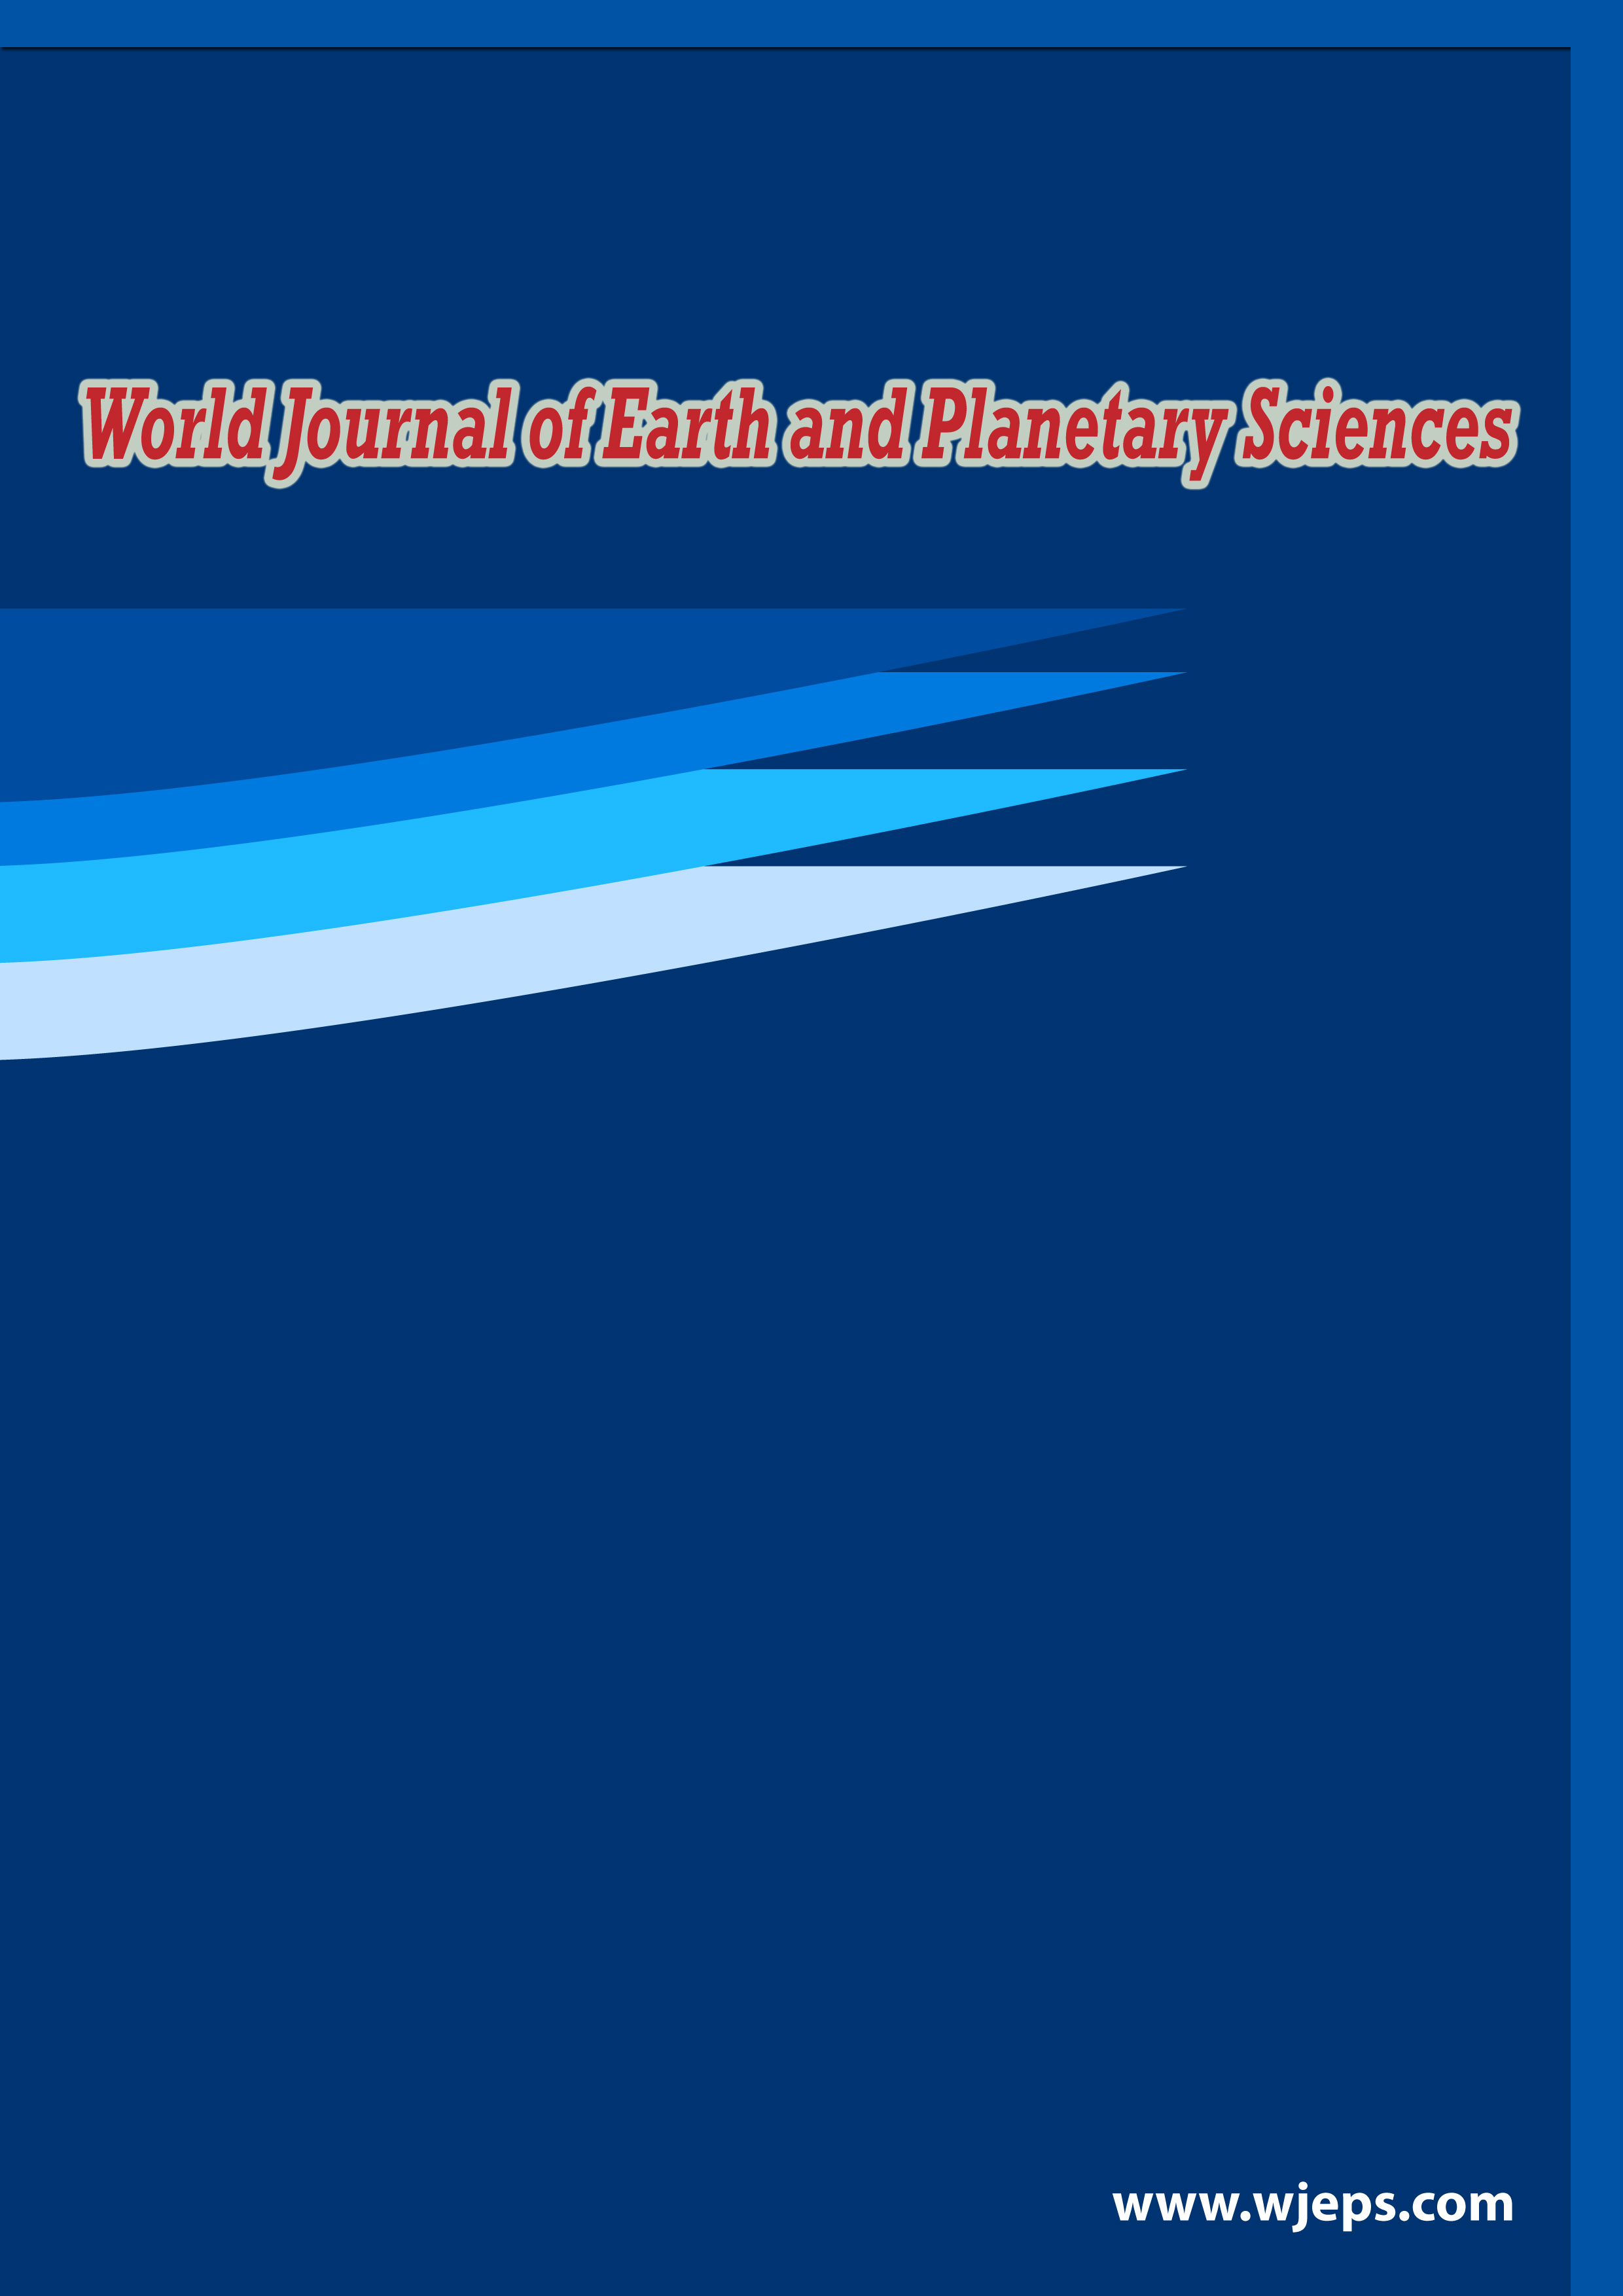 world journal of earth and planetary sciences cover page